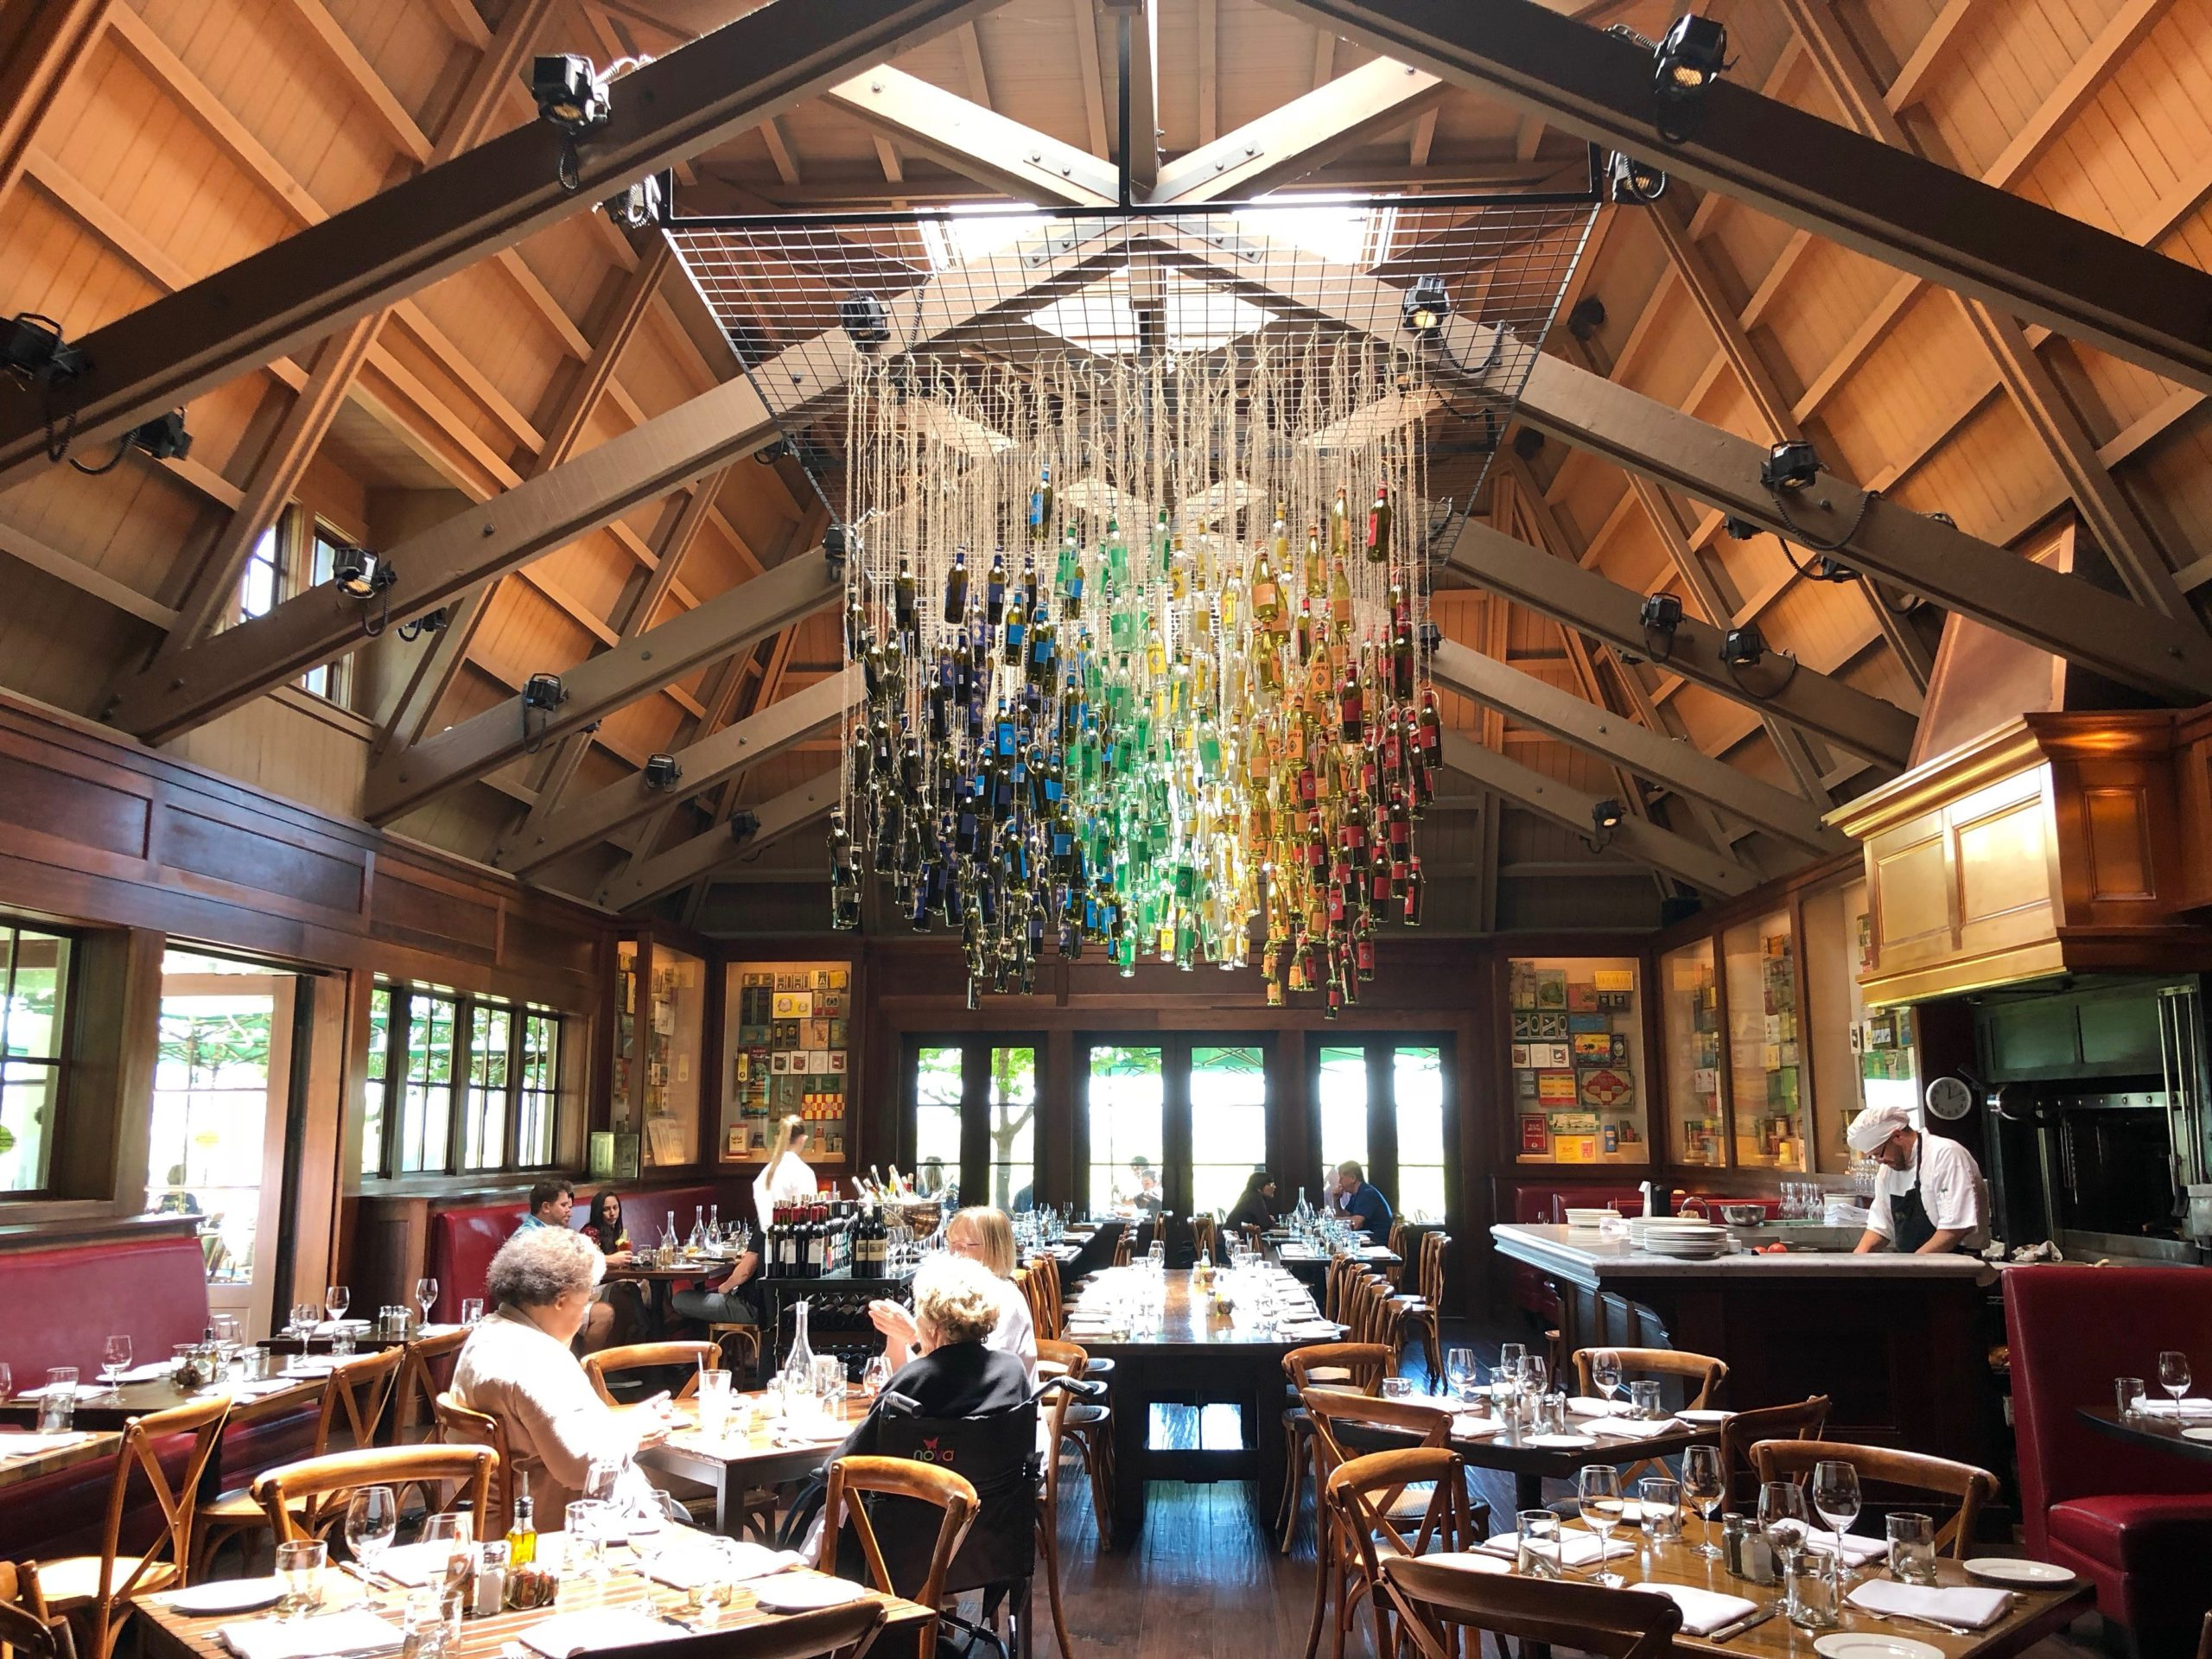 The exquisite dining room at The Francis Ford Coppola winery